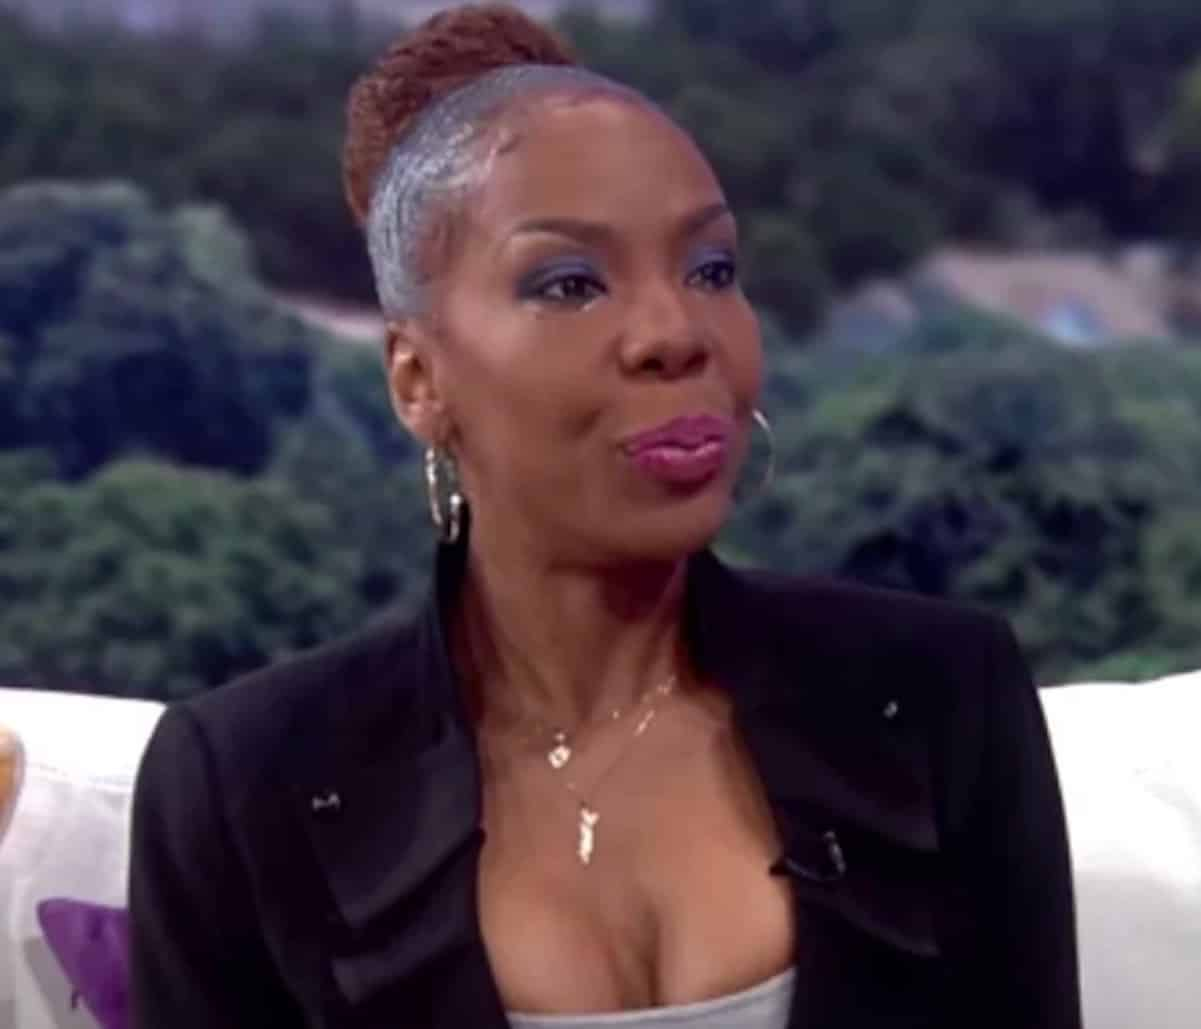 R Kelly's Ex-Wife Recounts Years of Domestic Abuse